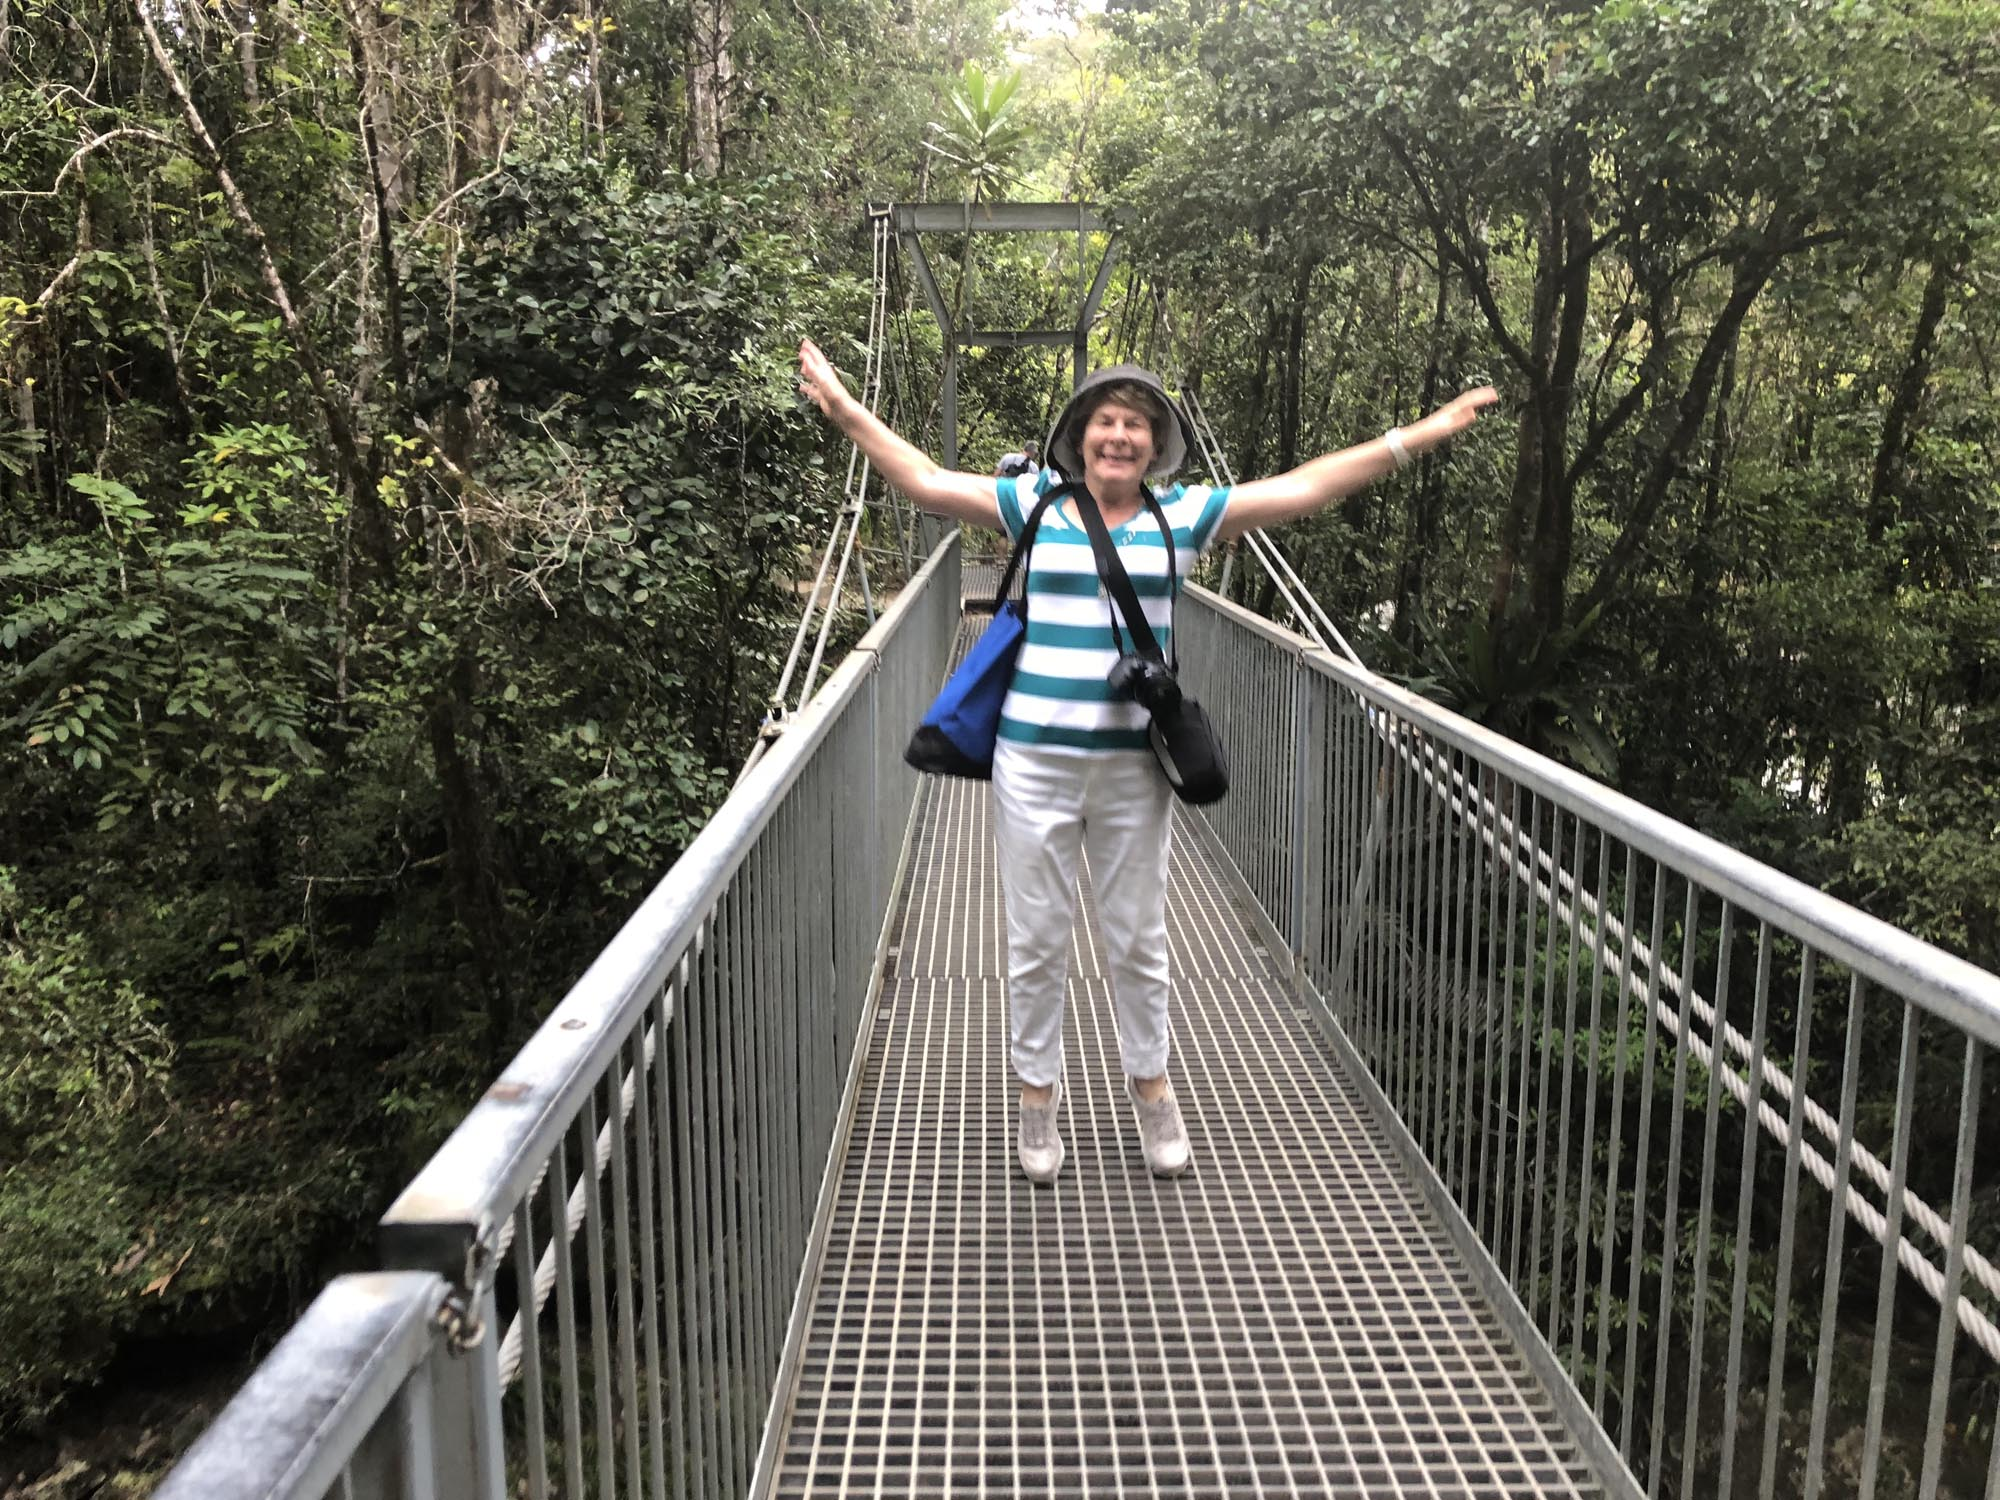 Jumping on a suspension bridge